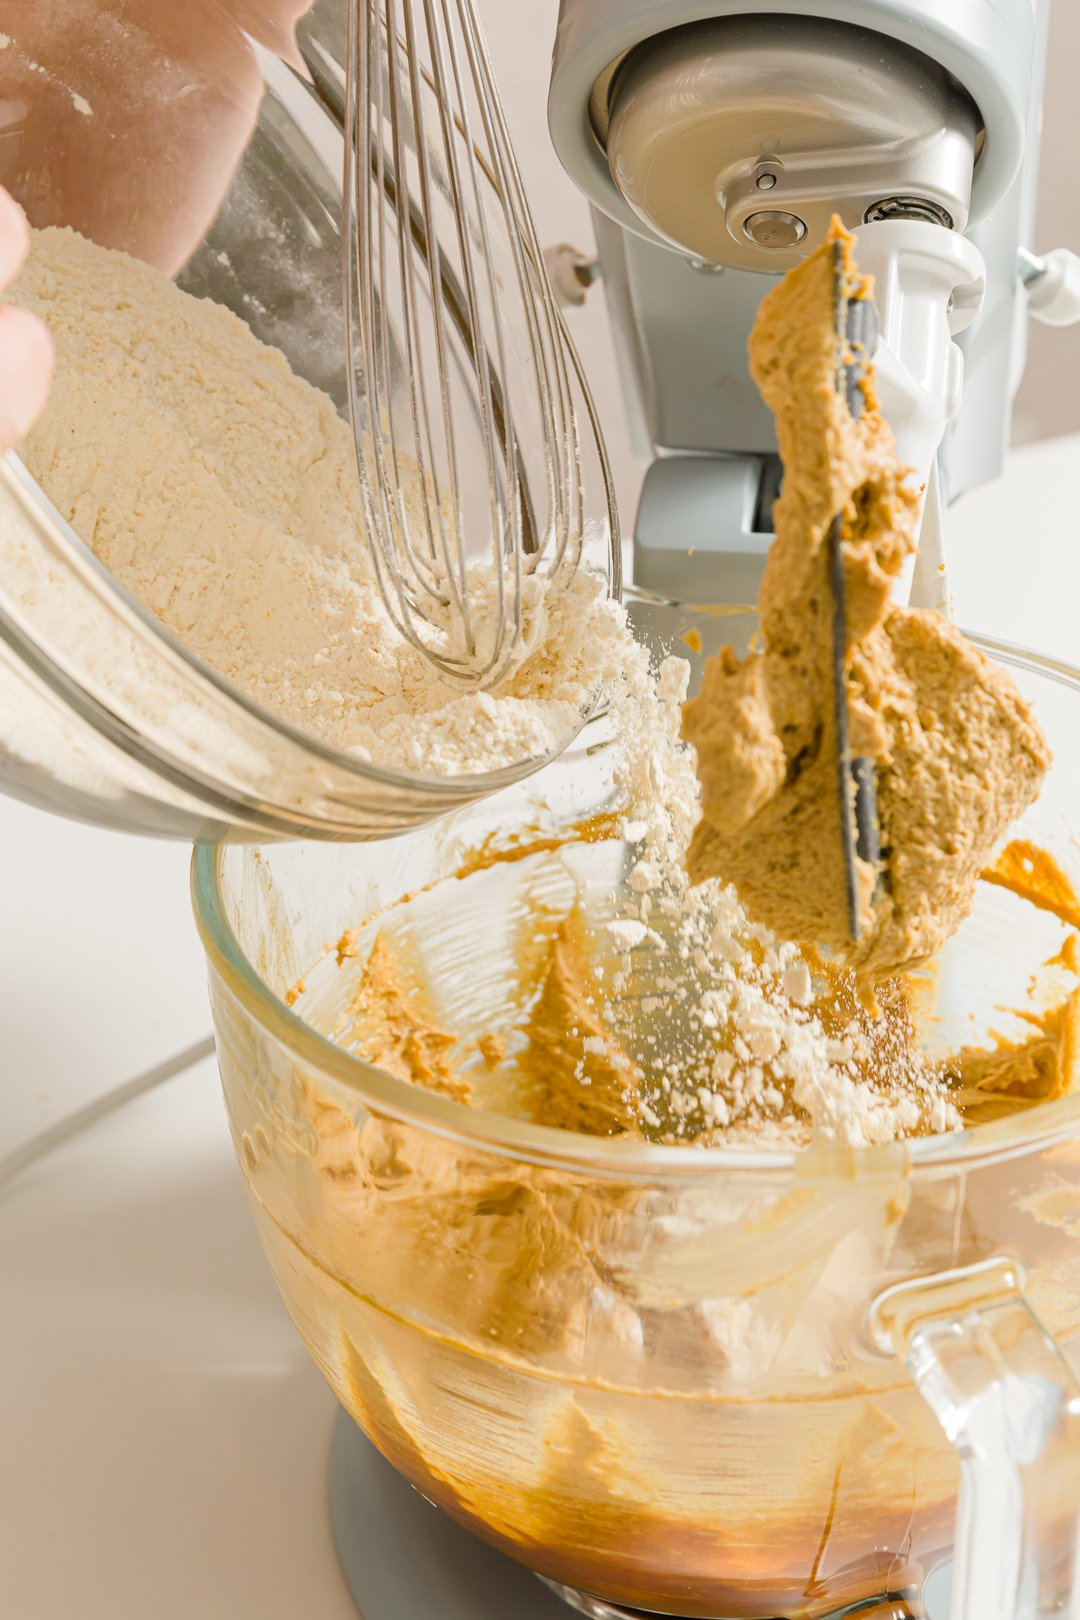 Adding dry ingredients to the batter